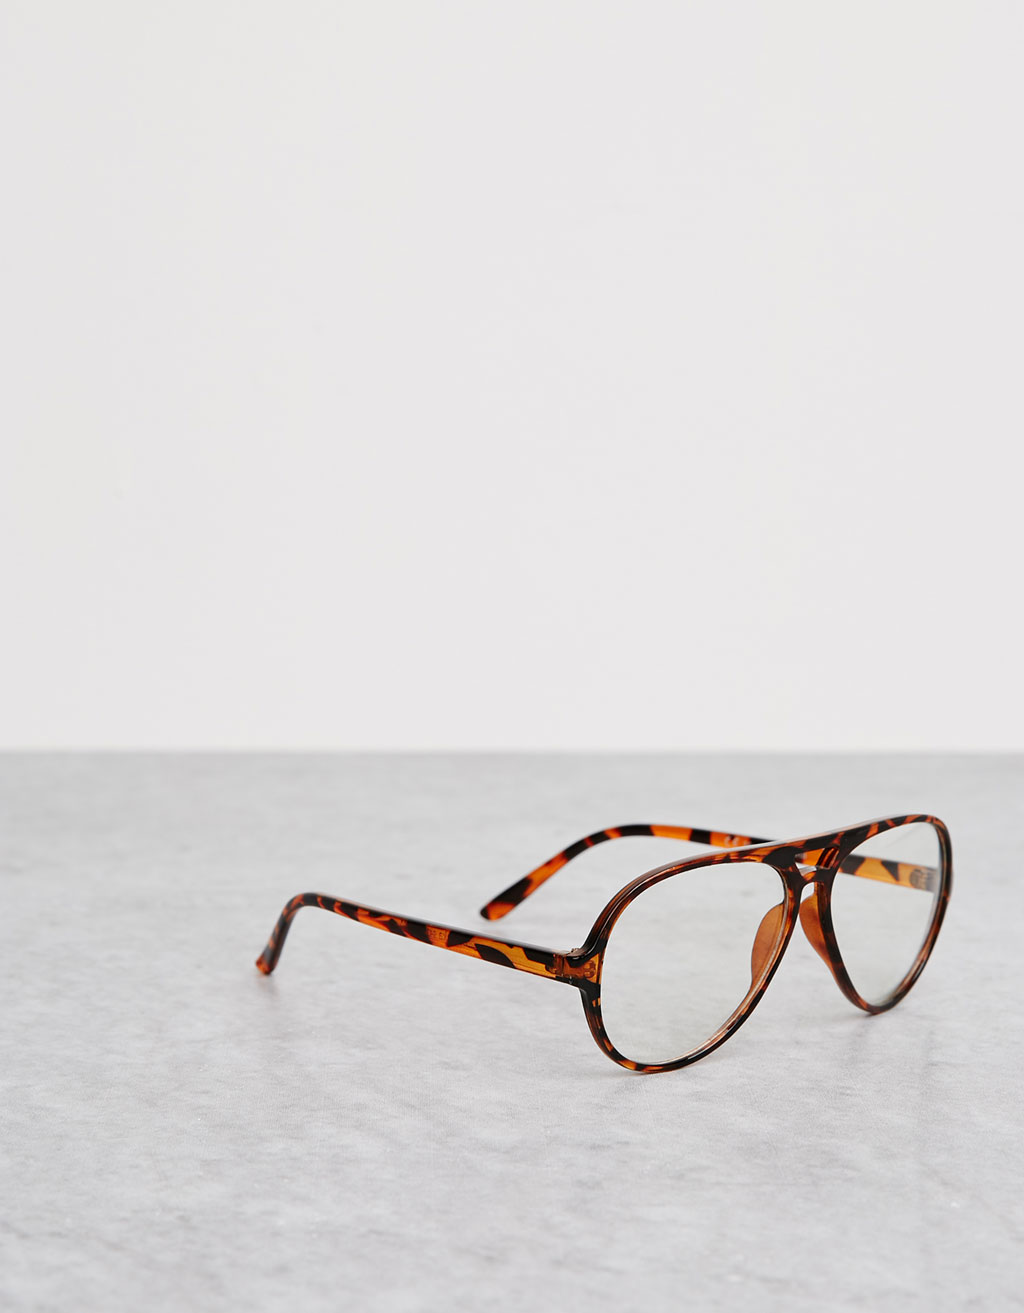 Aviator style reading glasses